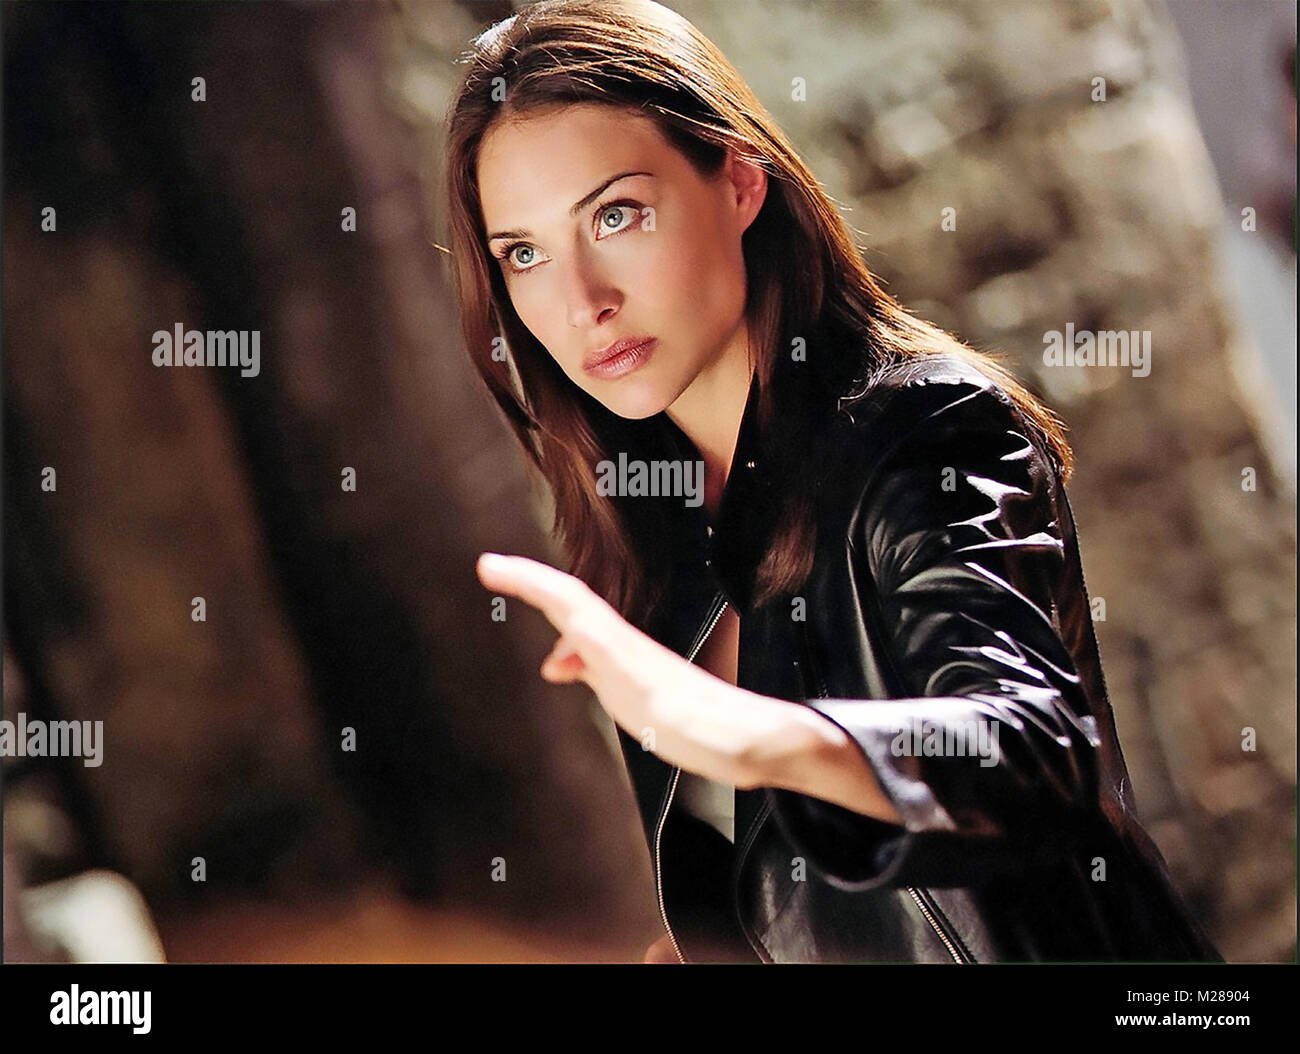 THE MEDALLION 2003 EMG film with  Claire Forlani - Stock Image